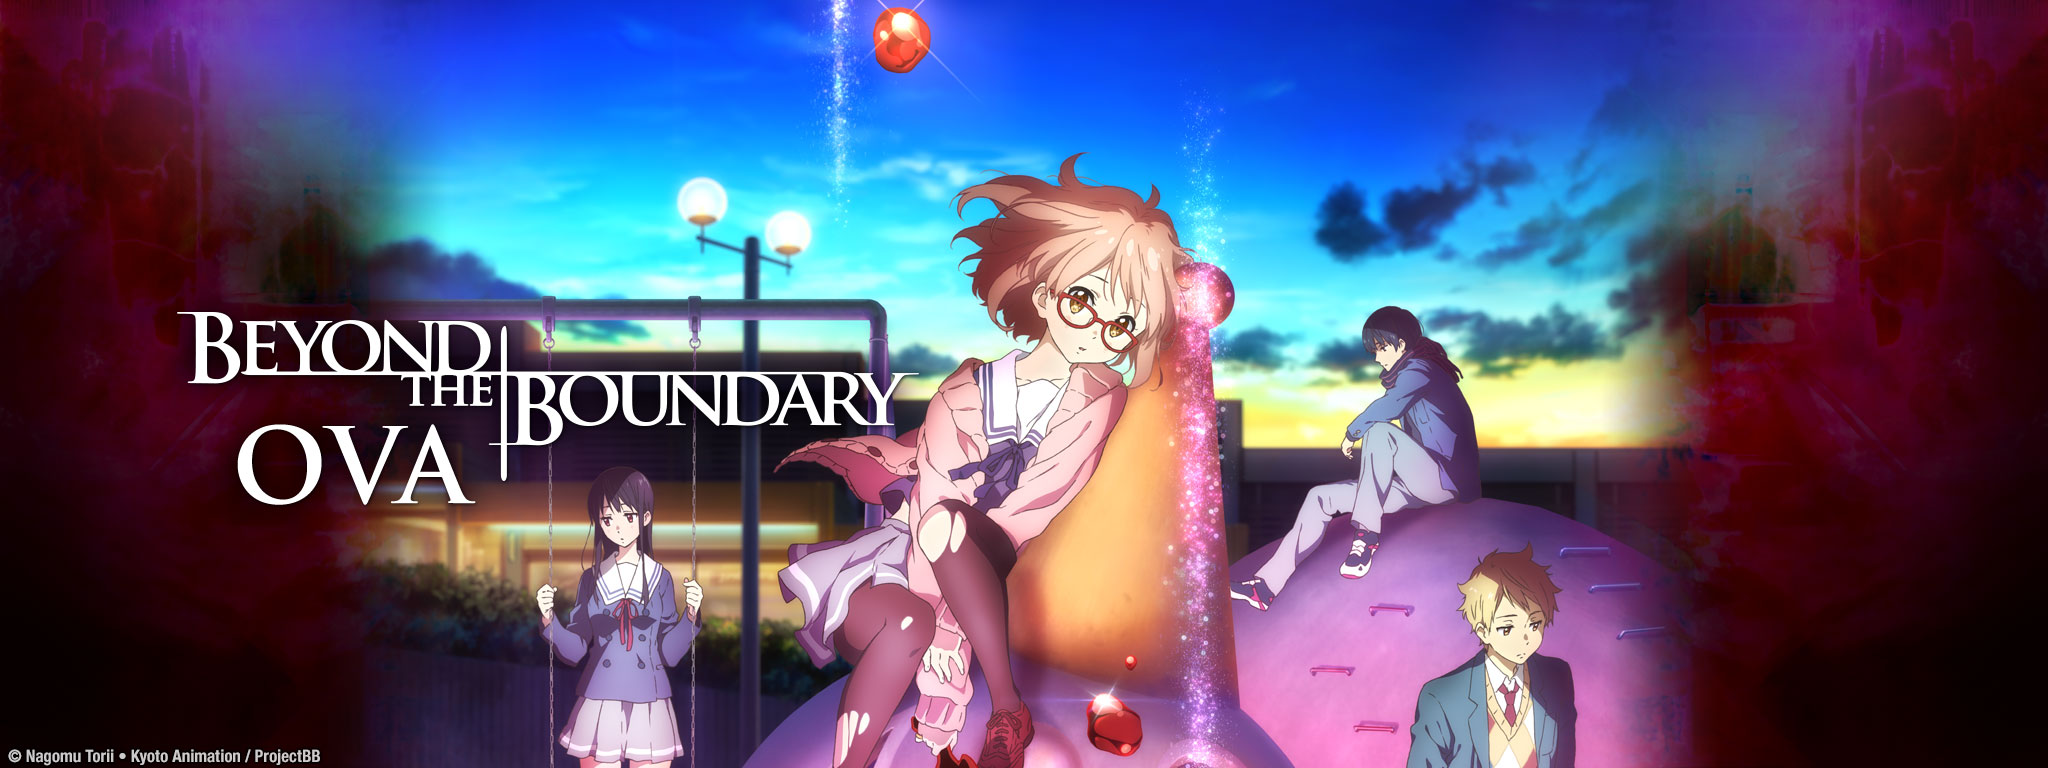 Beyond the Boundary OVA